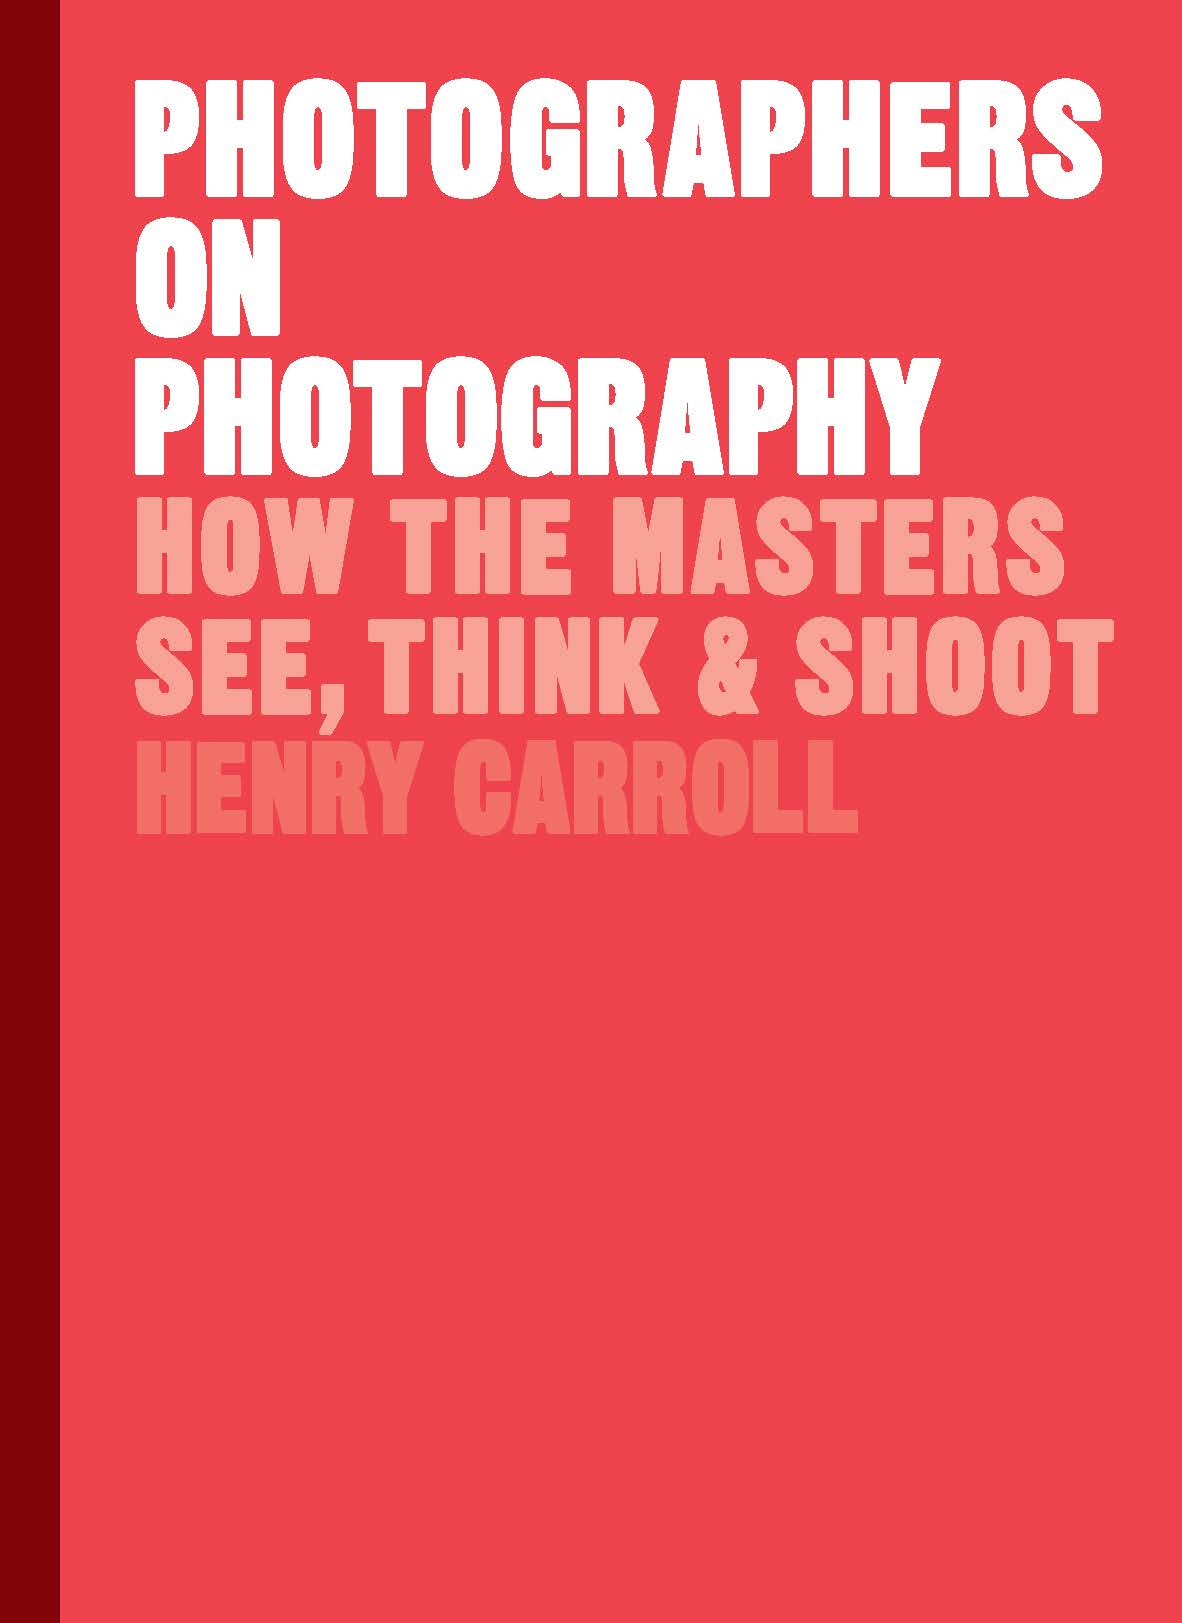 Book Launch: Photographers on Photography by Henry Carroll